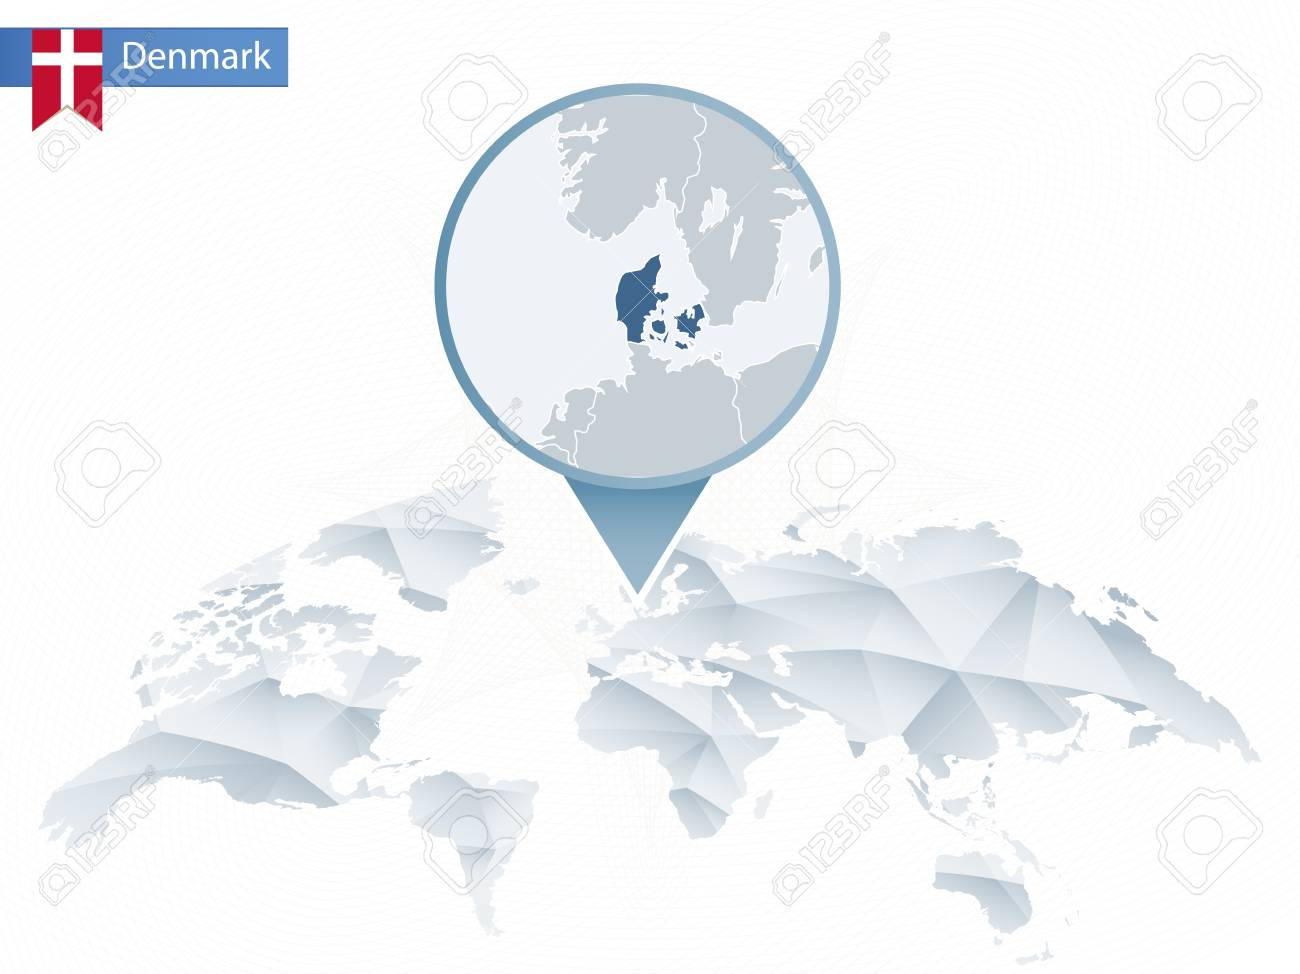 World Map Of Denmark.Abstract Rounded World Map With Pinned Detailed Denmark Map